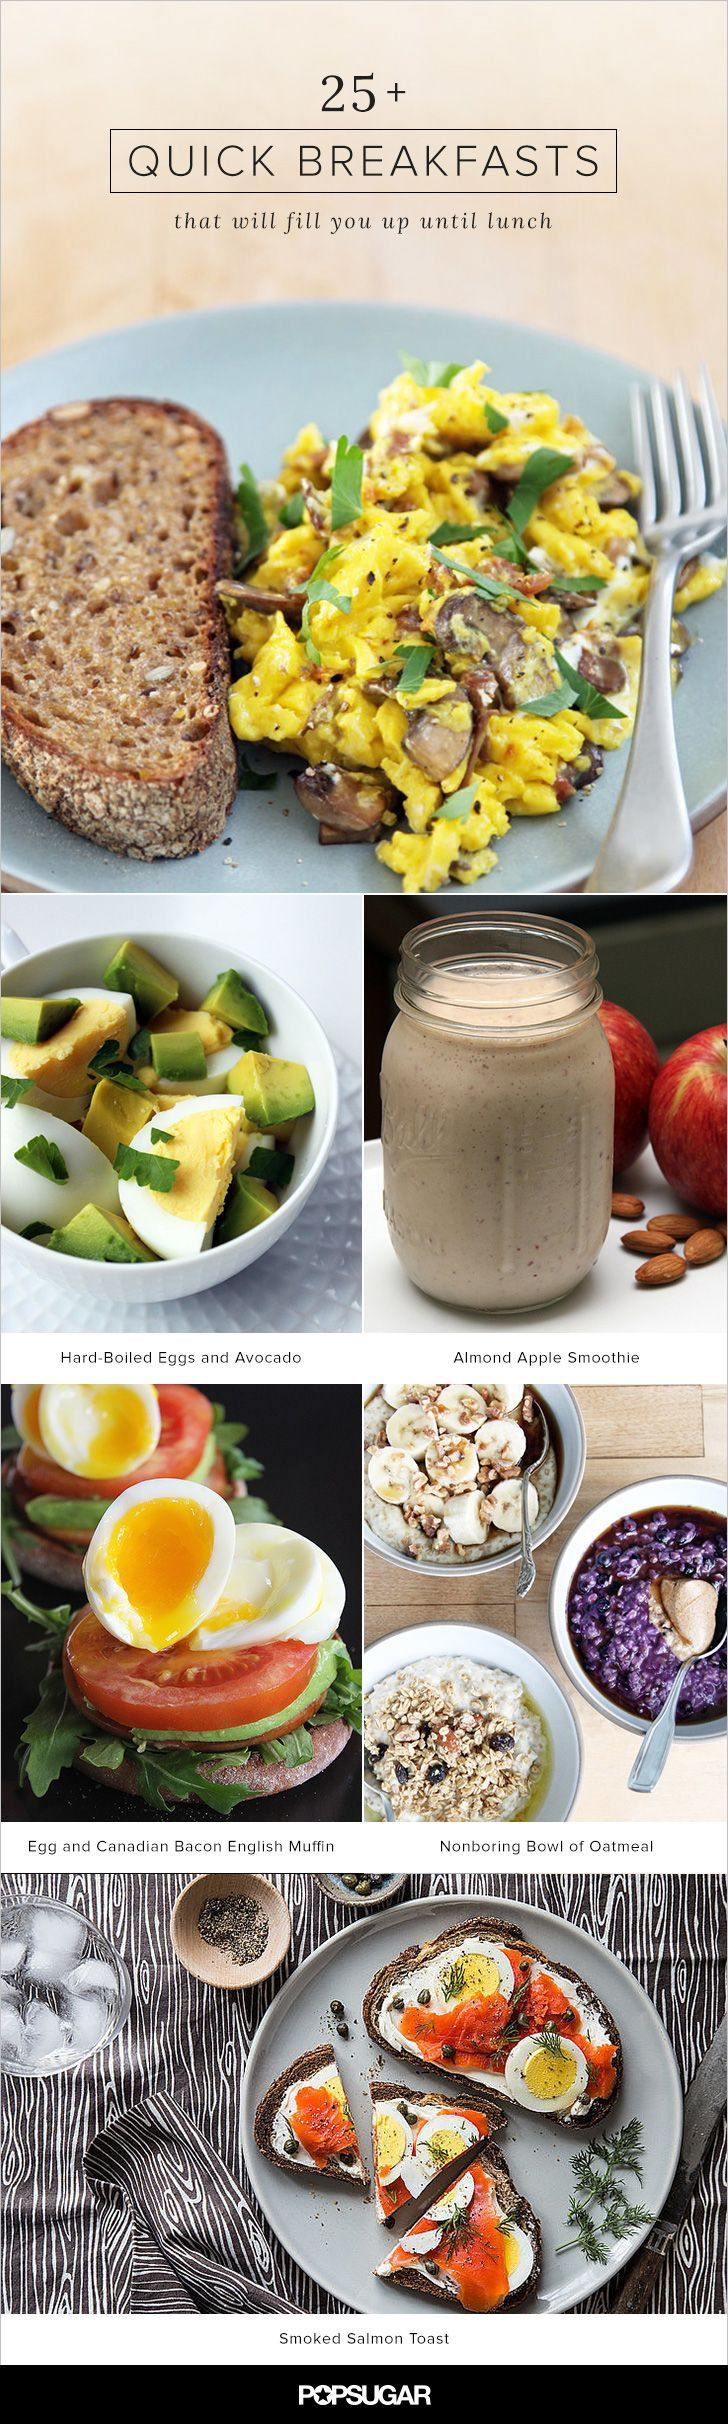 If you're guilty of skipping breakfast, then it's time for an intervention. Behold, 26 delicious recipes that are quick, easy, and filling. It's possible to make a good breakfast without getting up any earlier (or at least not much earlier), and the best part is you'll be completely satisfied until lunchtime rolls around.